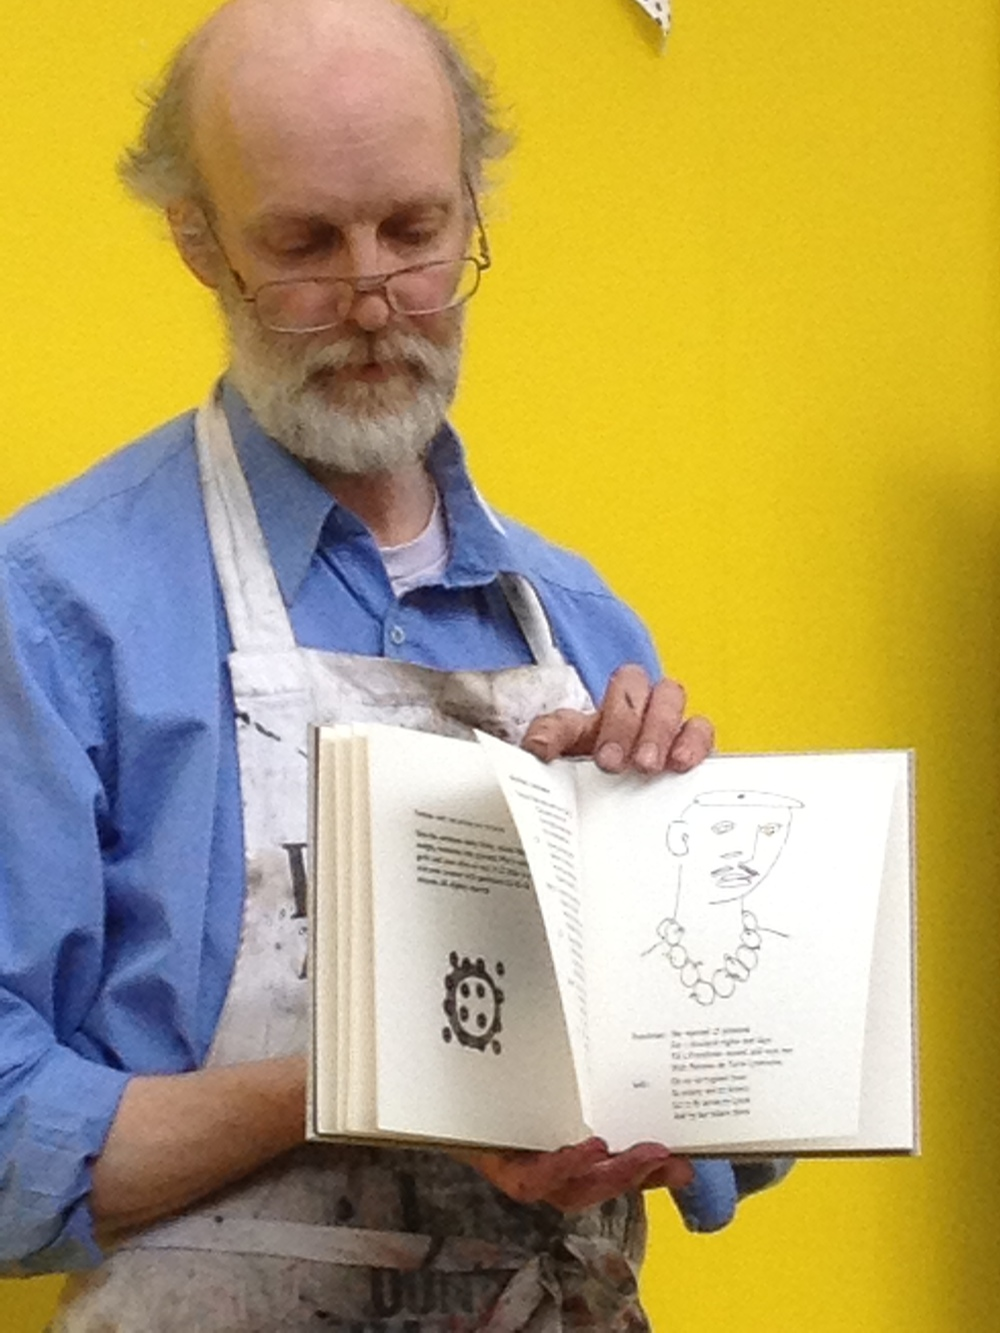 Richard Lawrence with an Artists book he printed